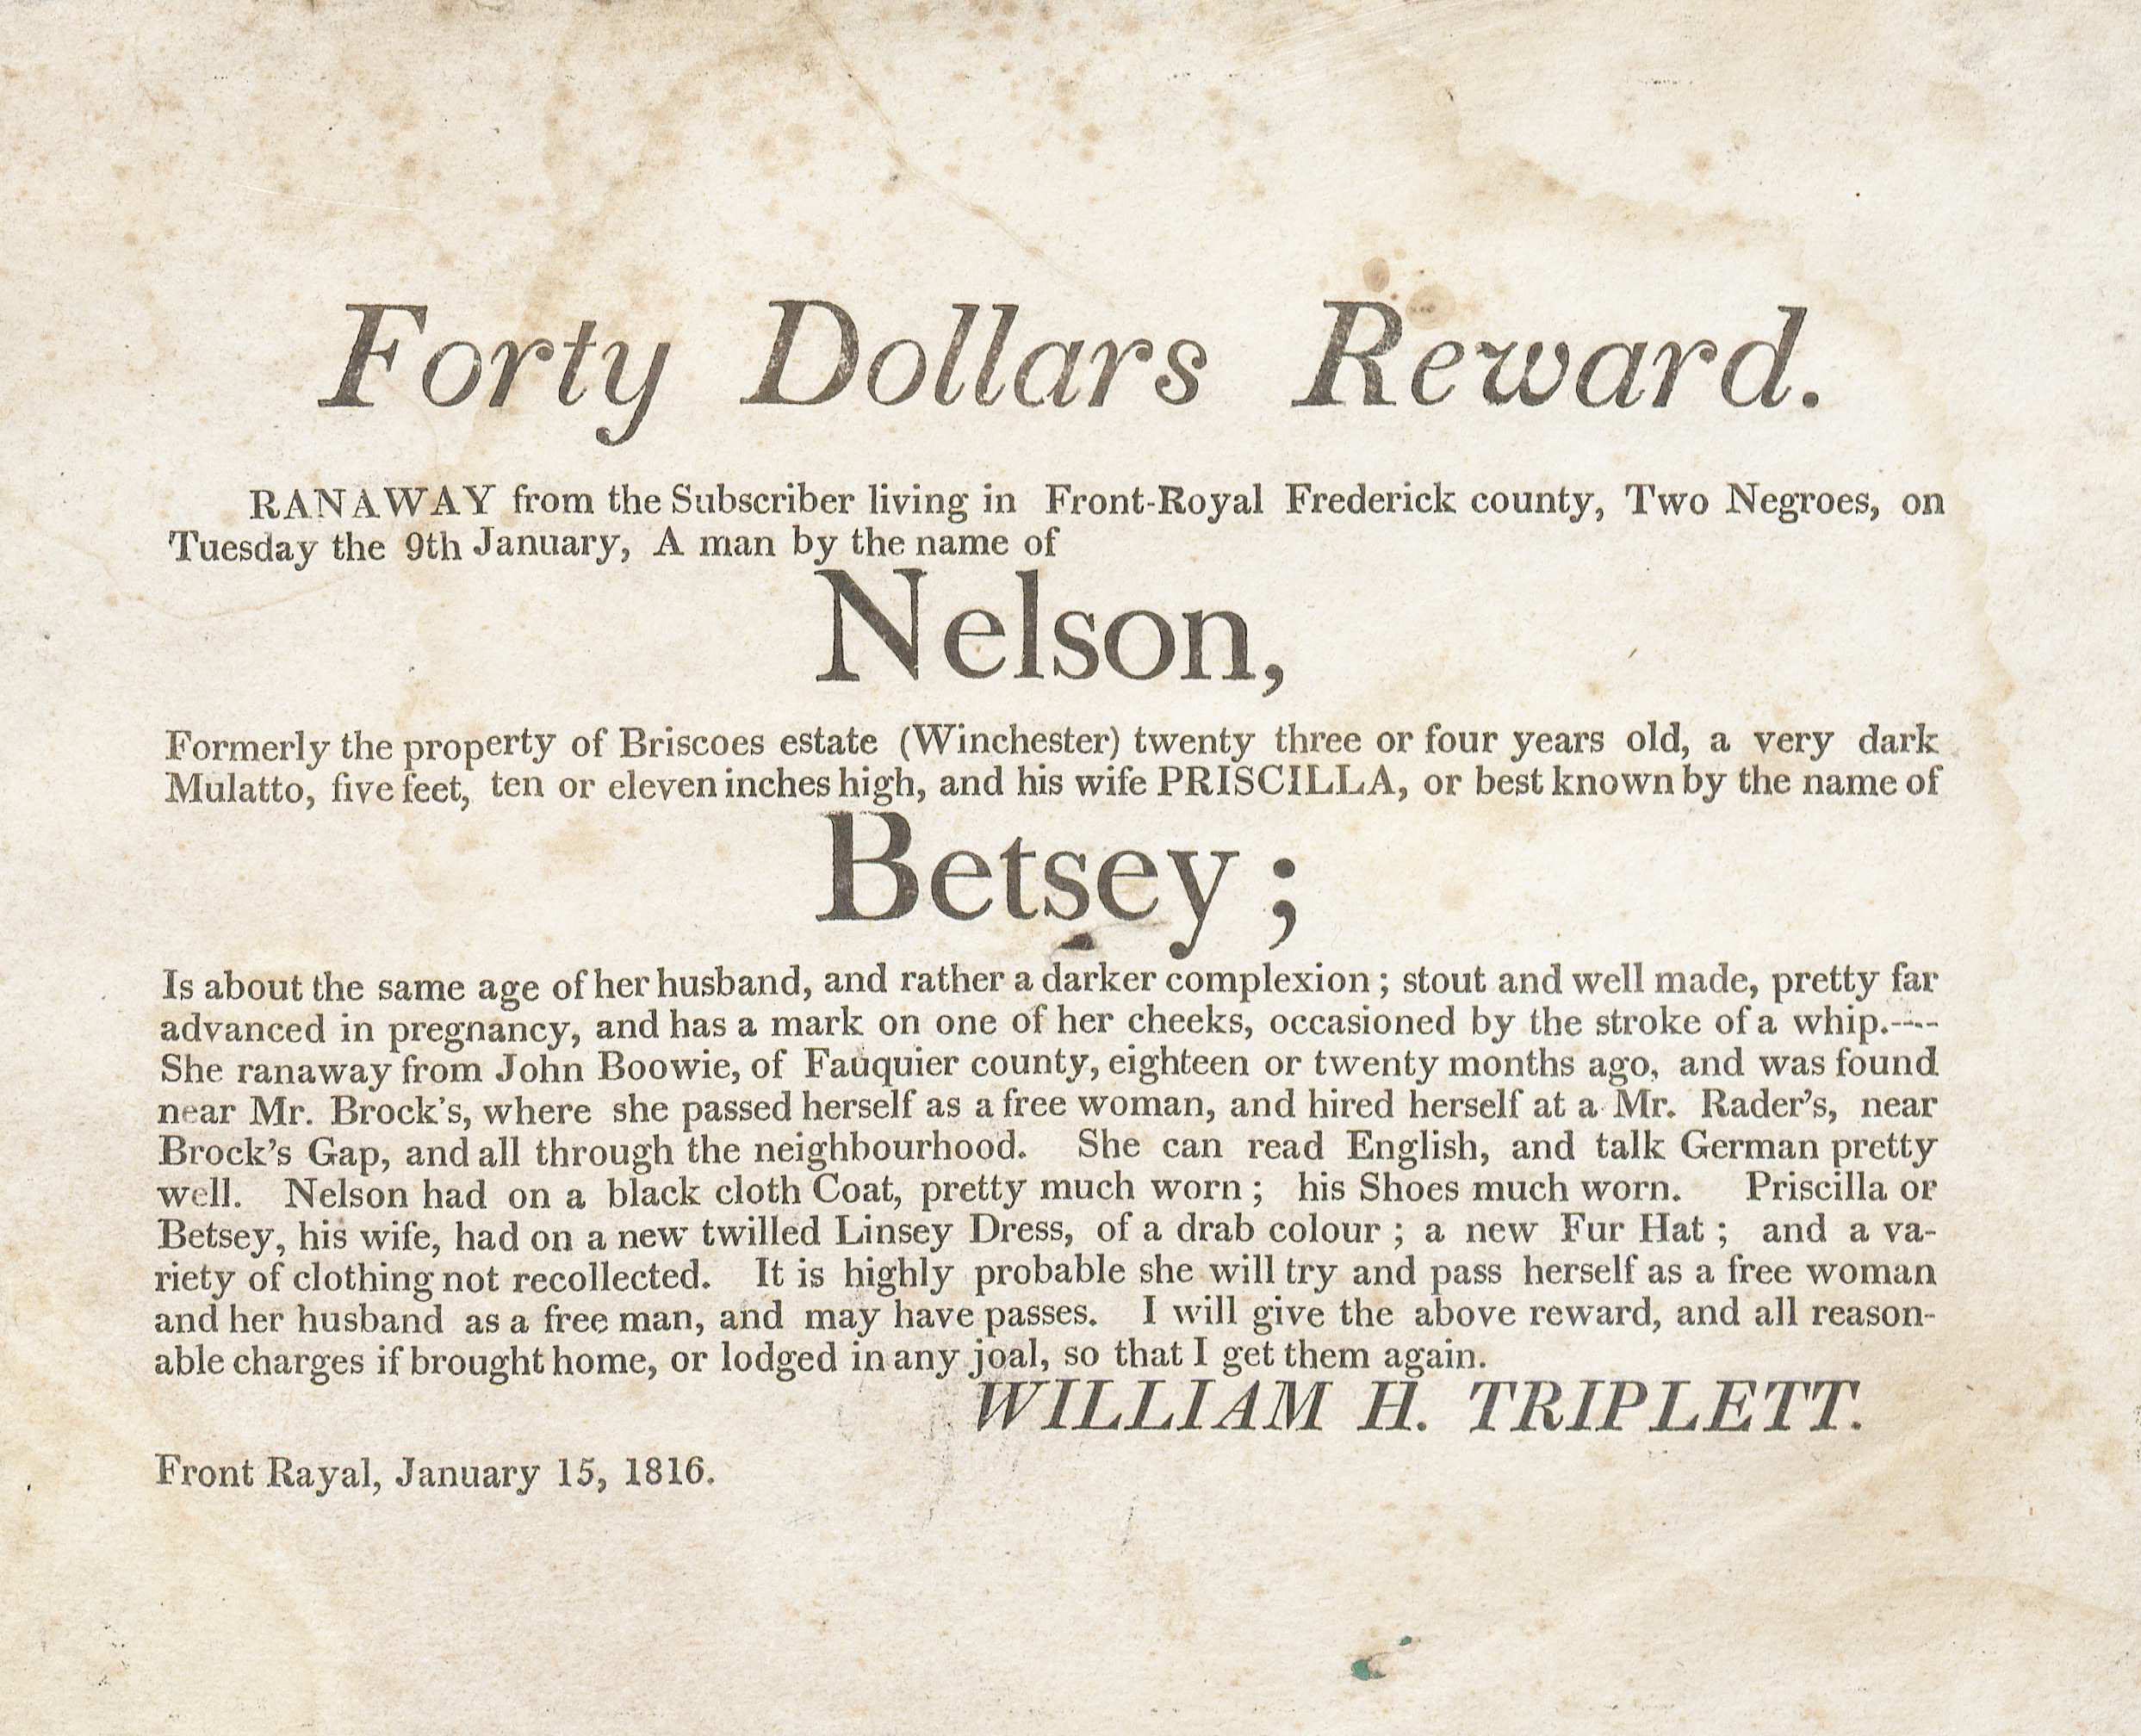 Runaway advertisement, 1816. (Broadside 1816. Image by Petrina Jackson)